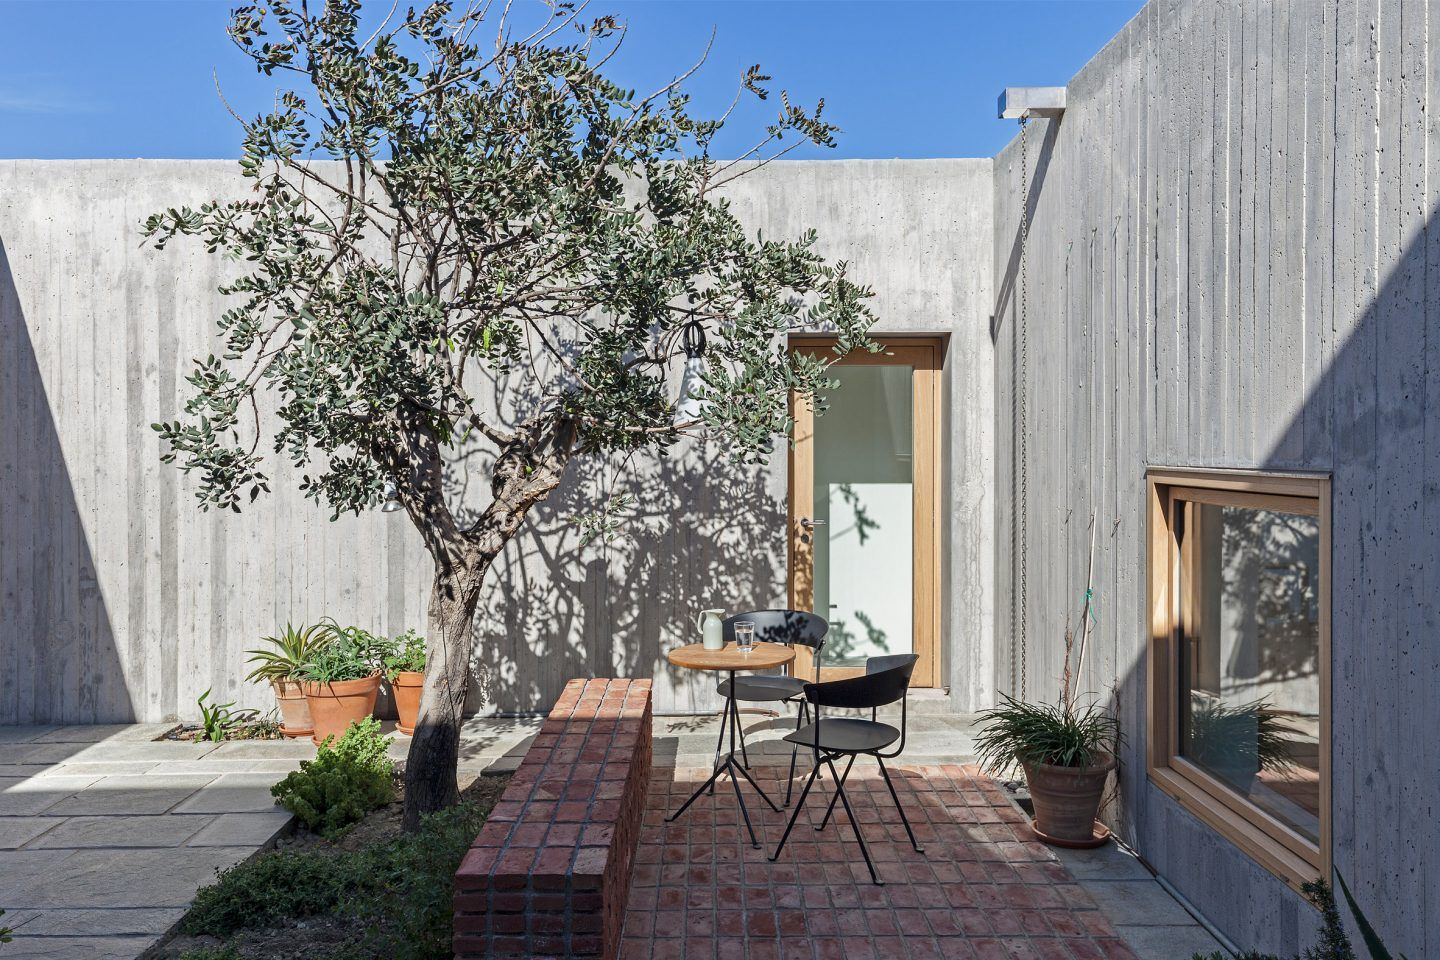 IGNANT-Architecture-OOAK-Architects-Patio-House-005